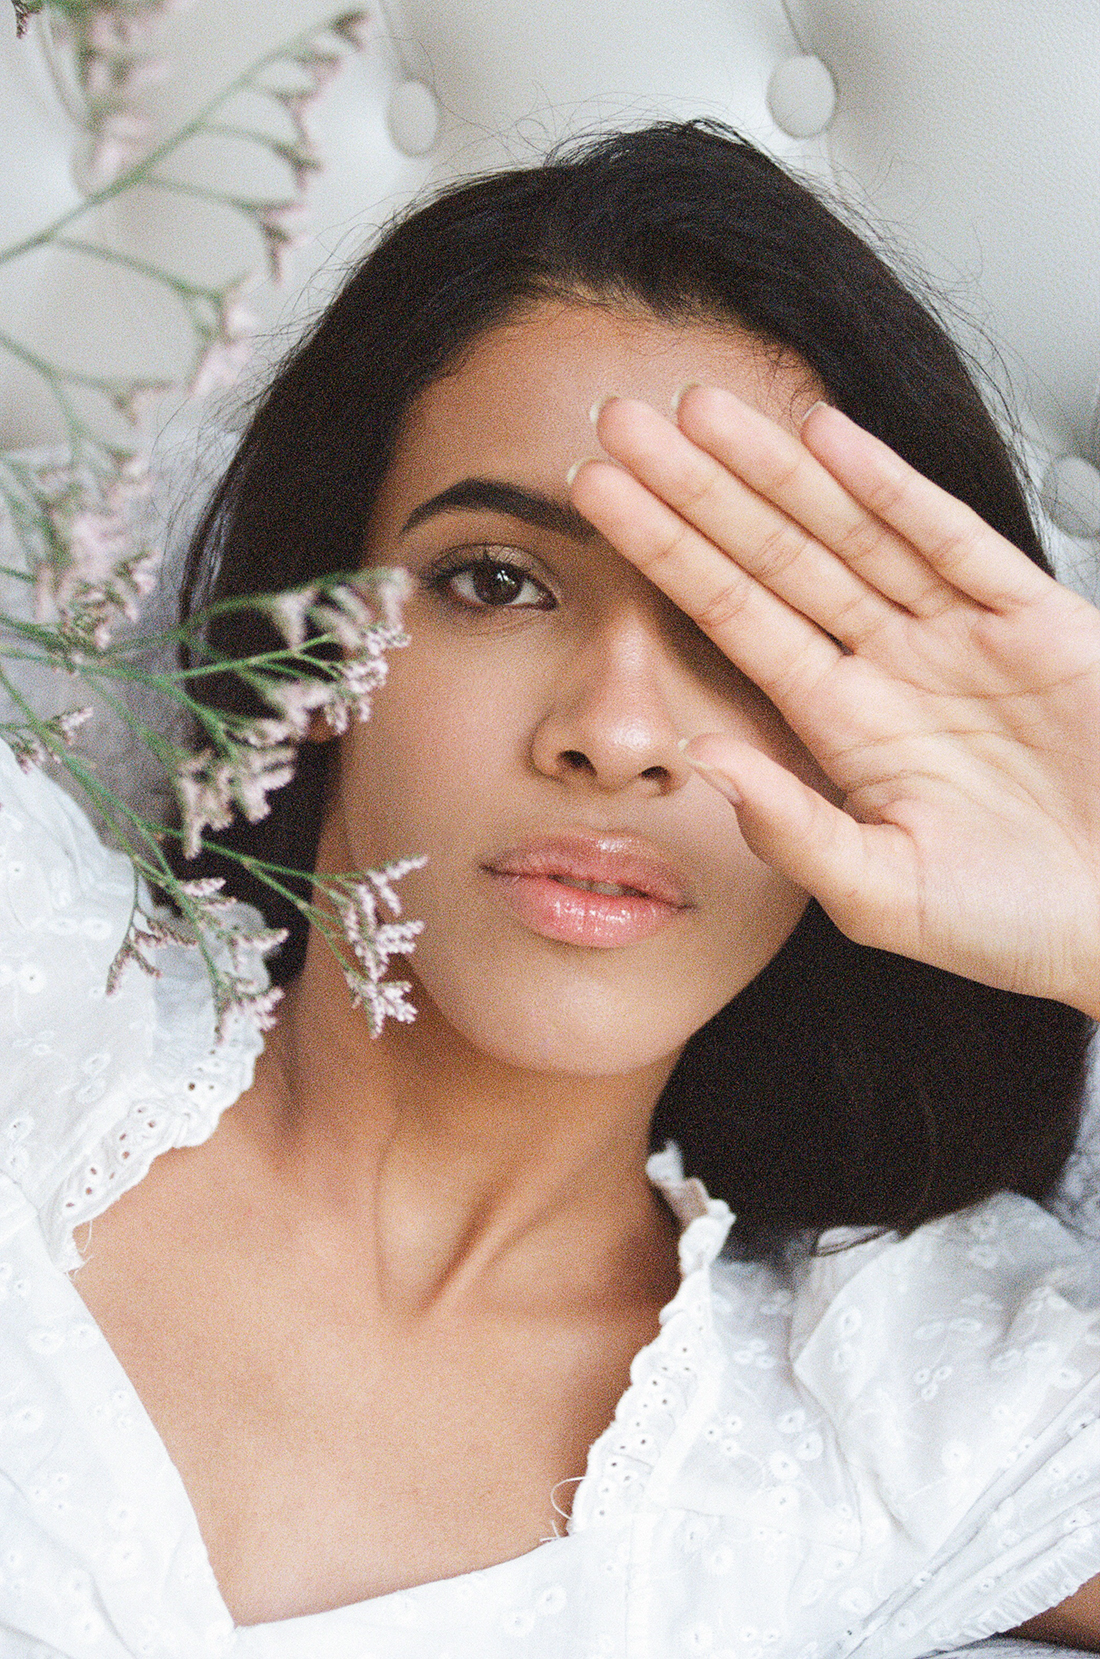 35mm film model close up portrait with flowers - Beatriz @ PRM by London photographer Ailera Stone